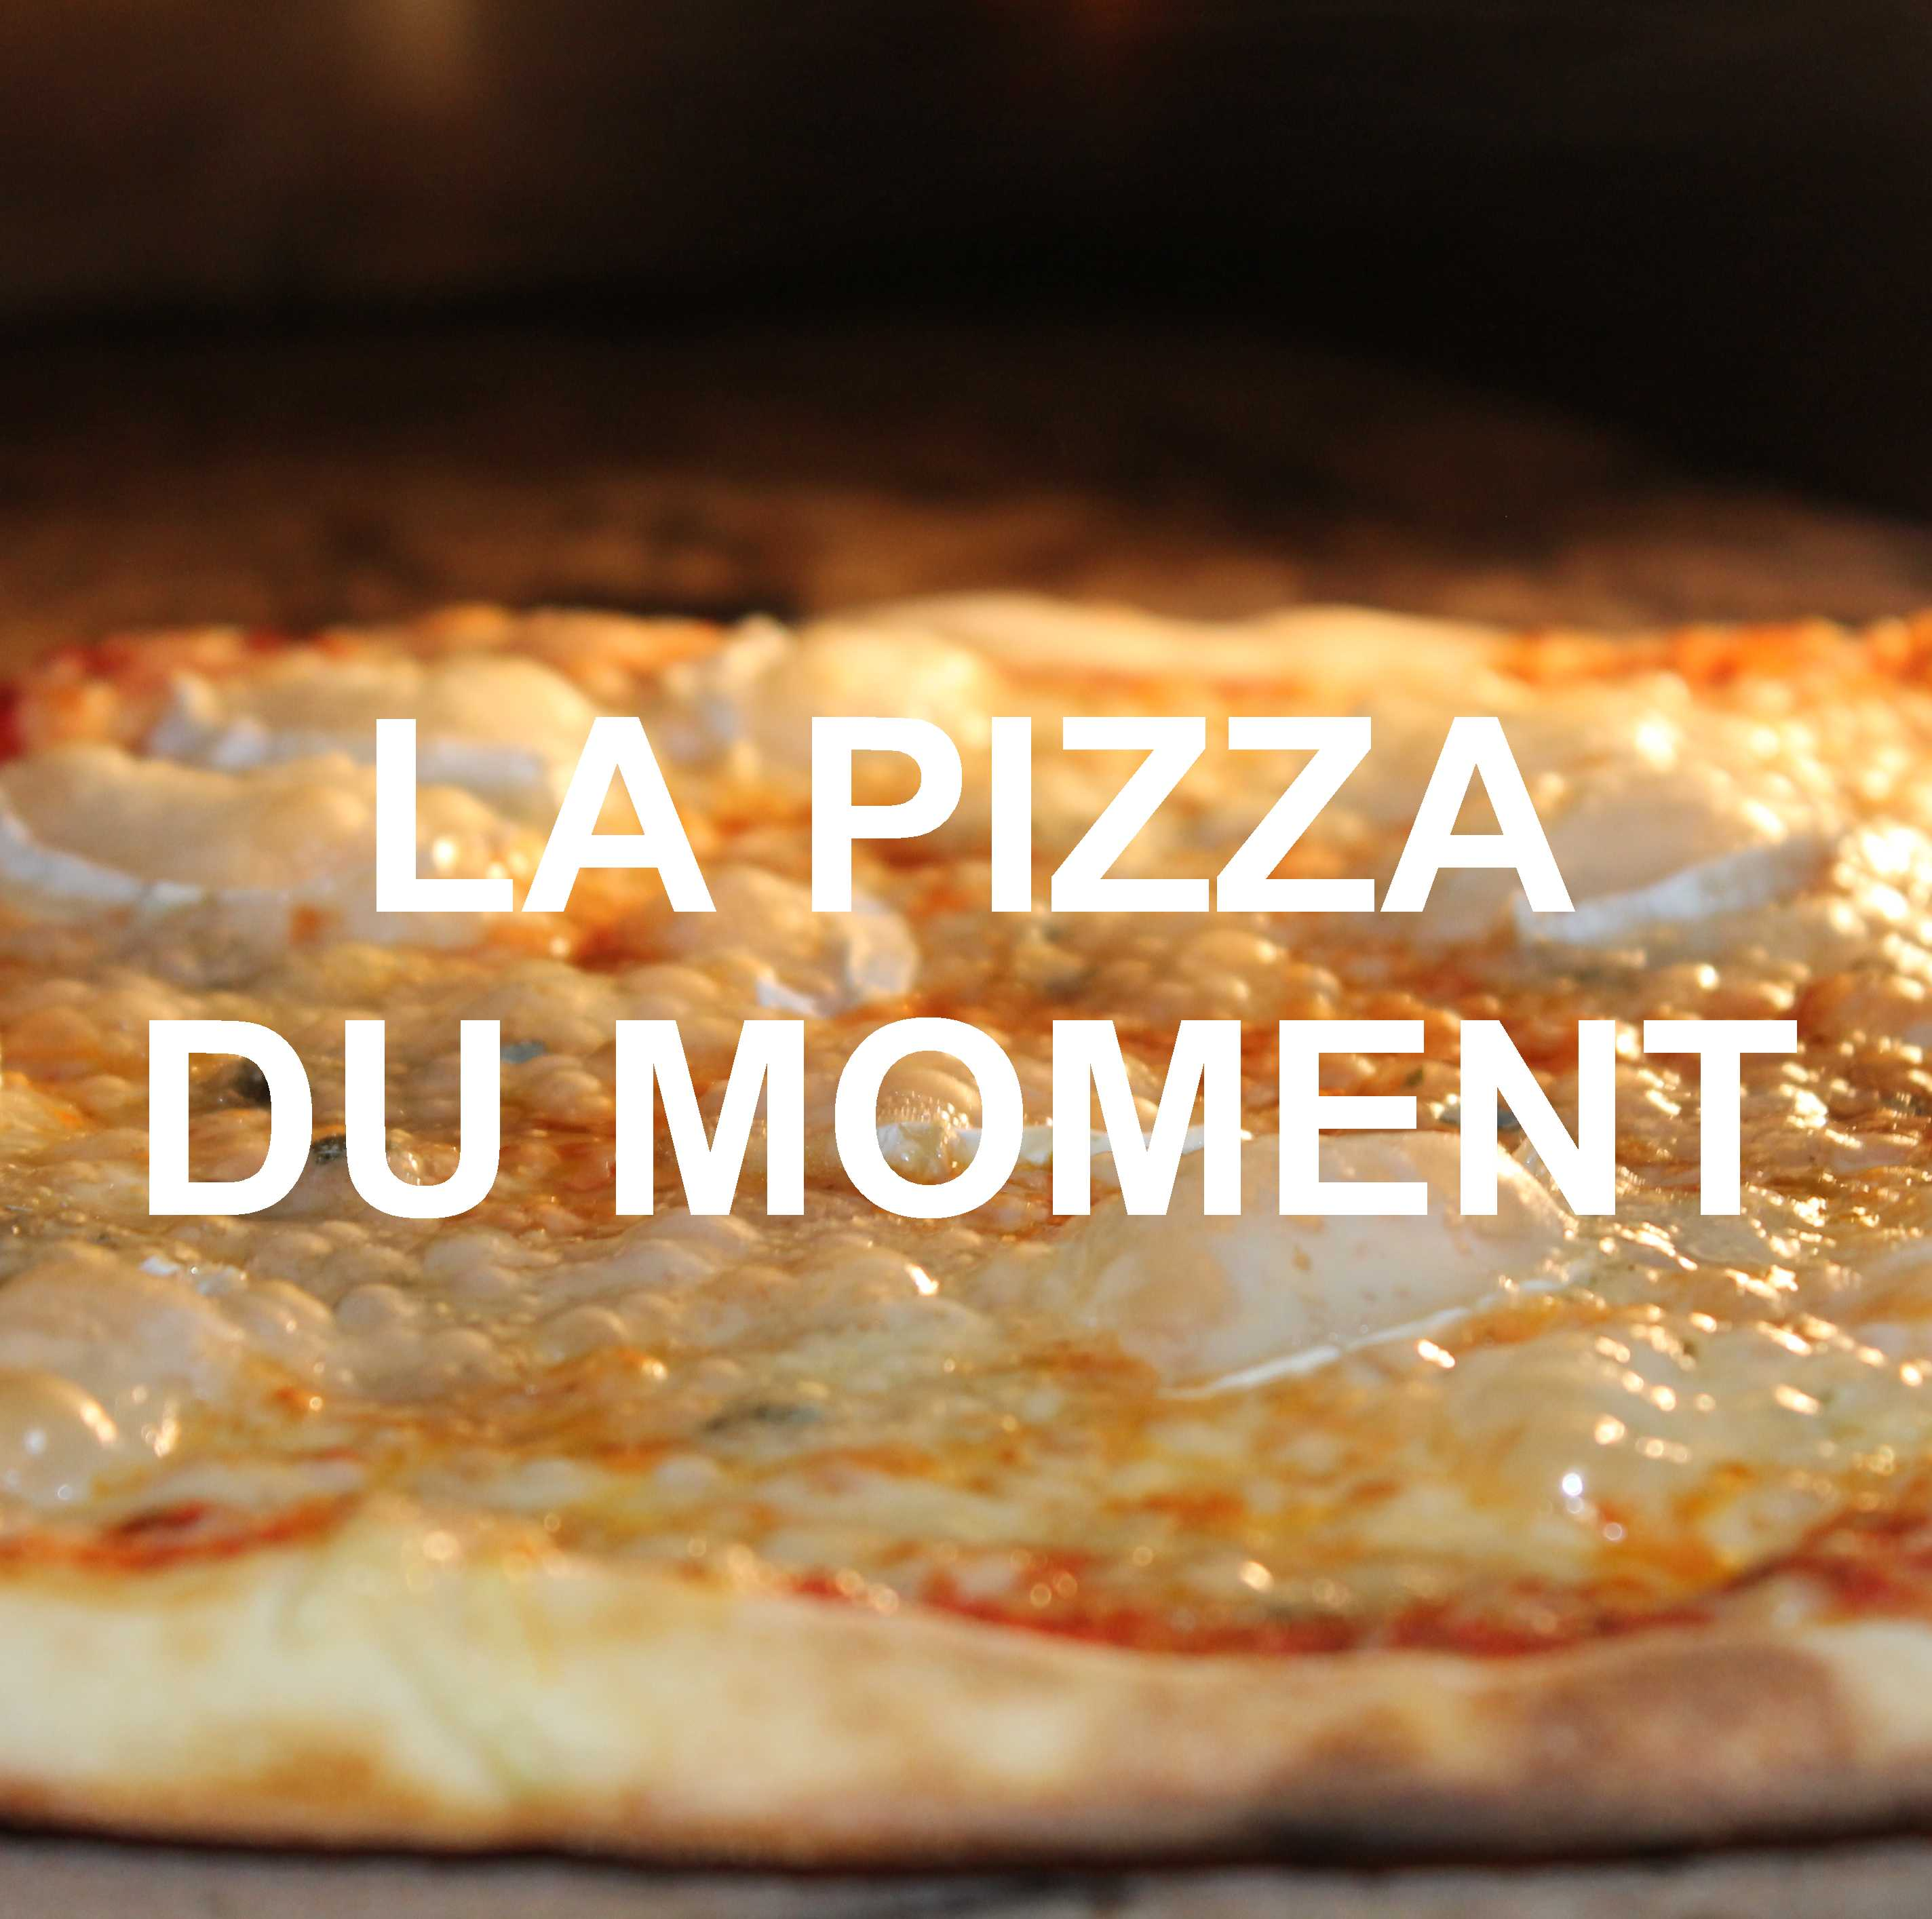 La pizza du moment